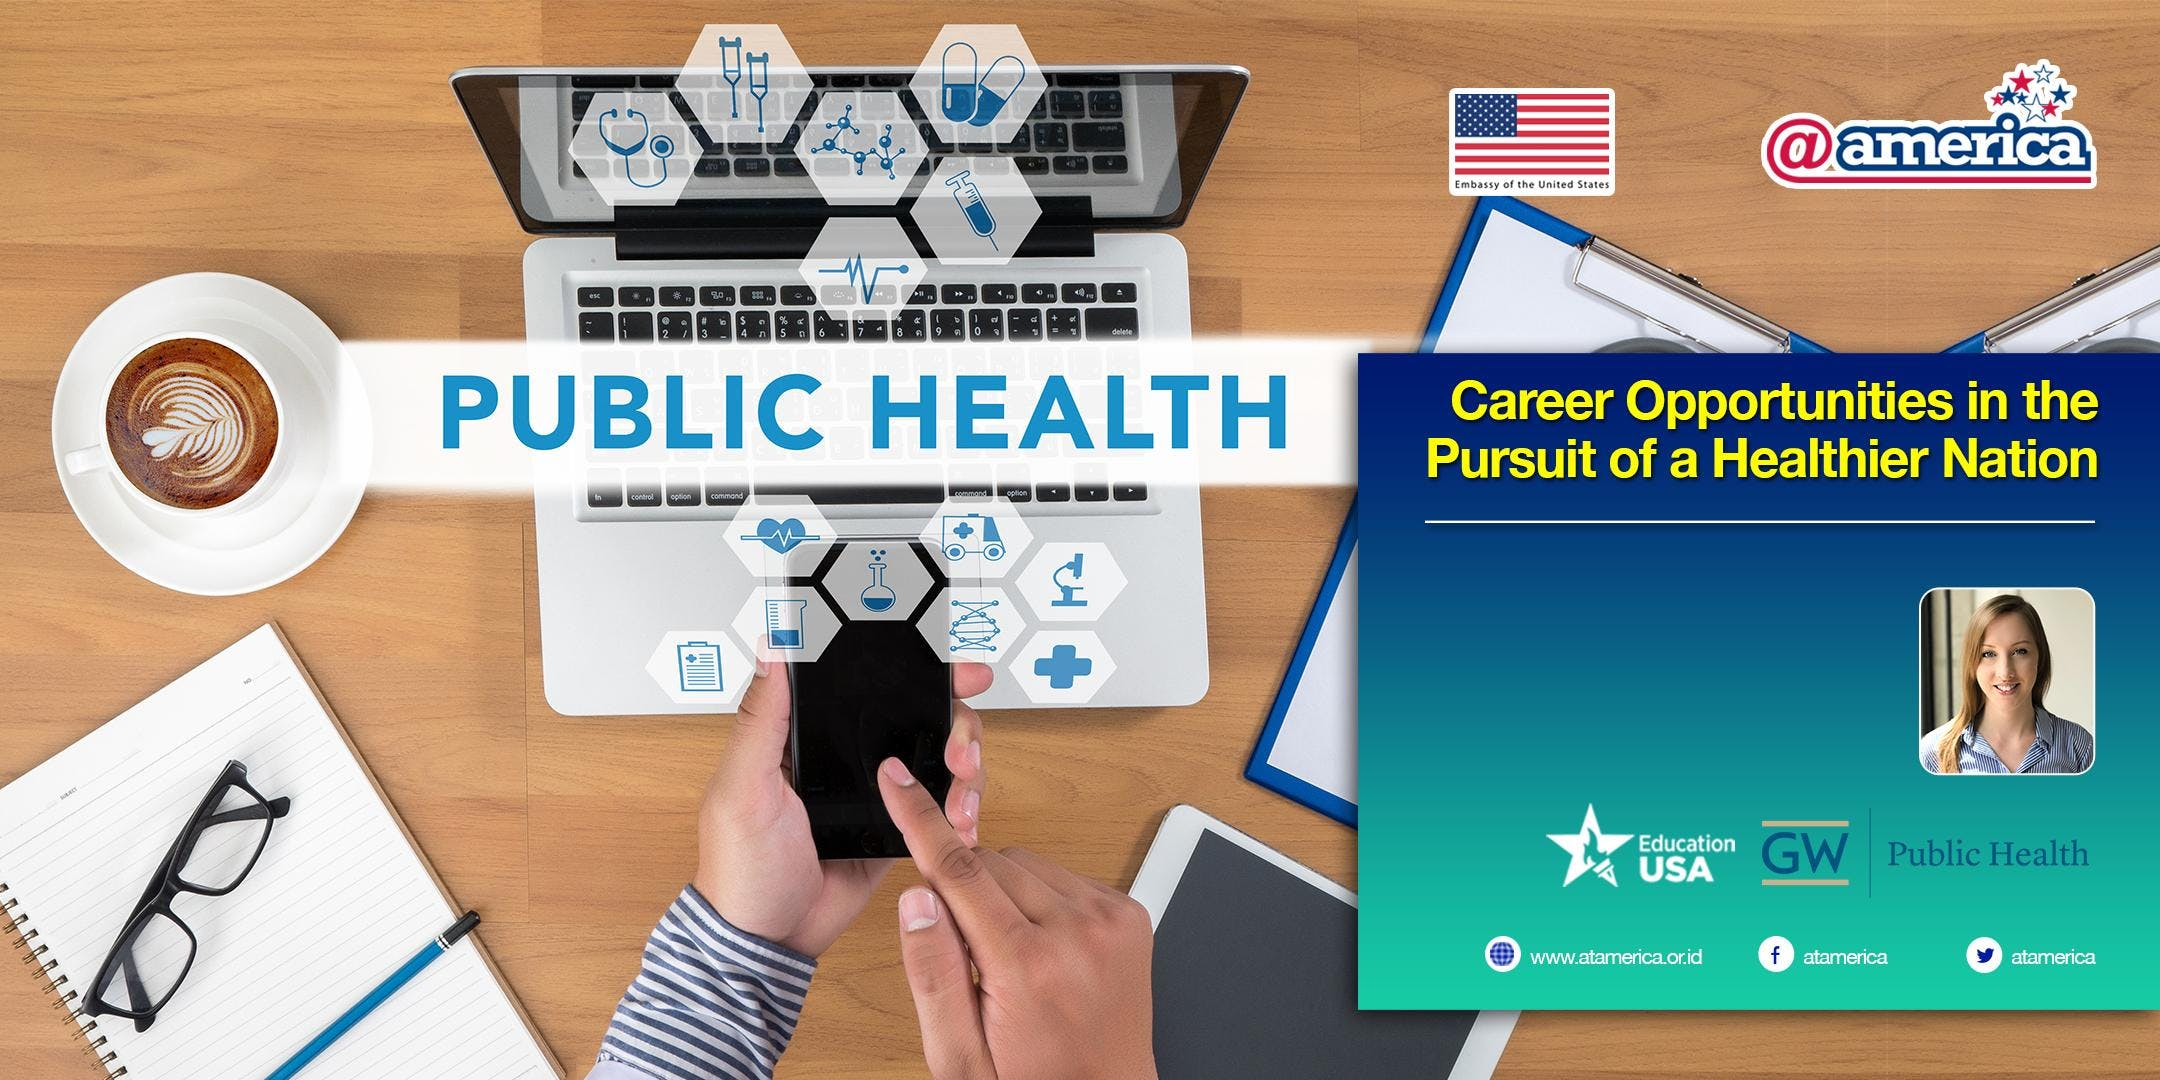 Career Opportunities in the Pursuit of a Healthier Nation